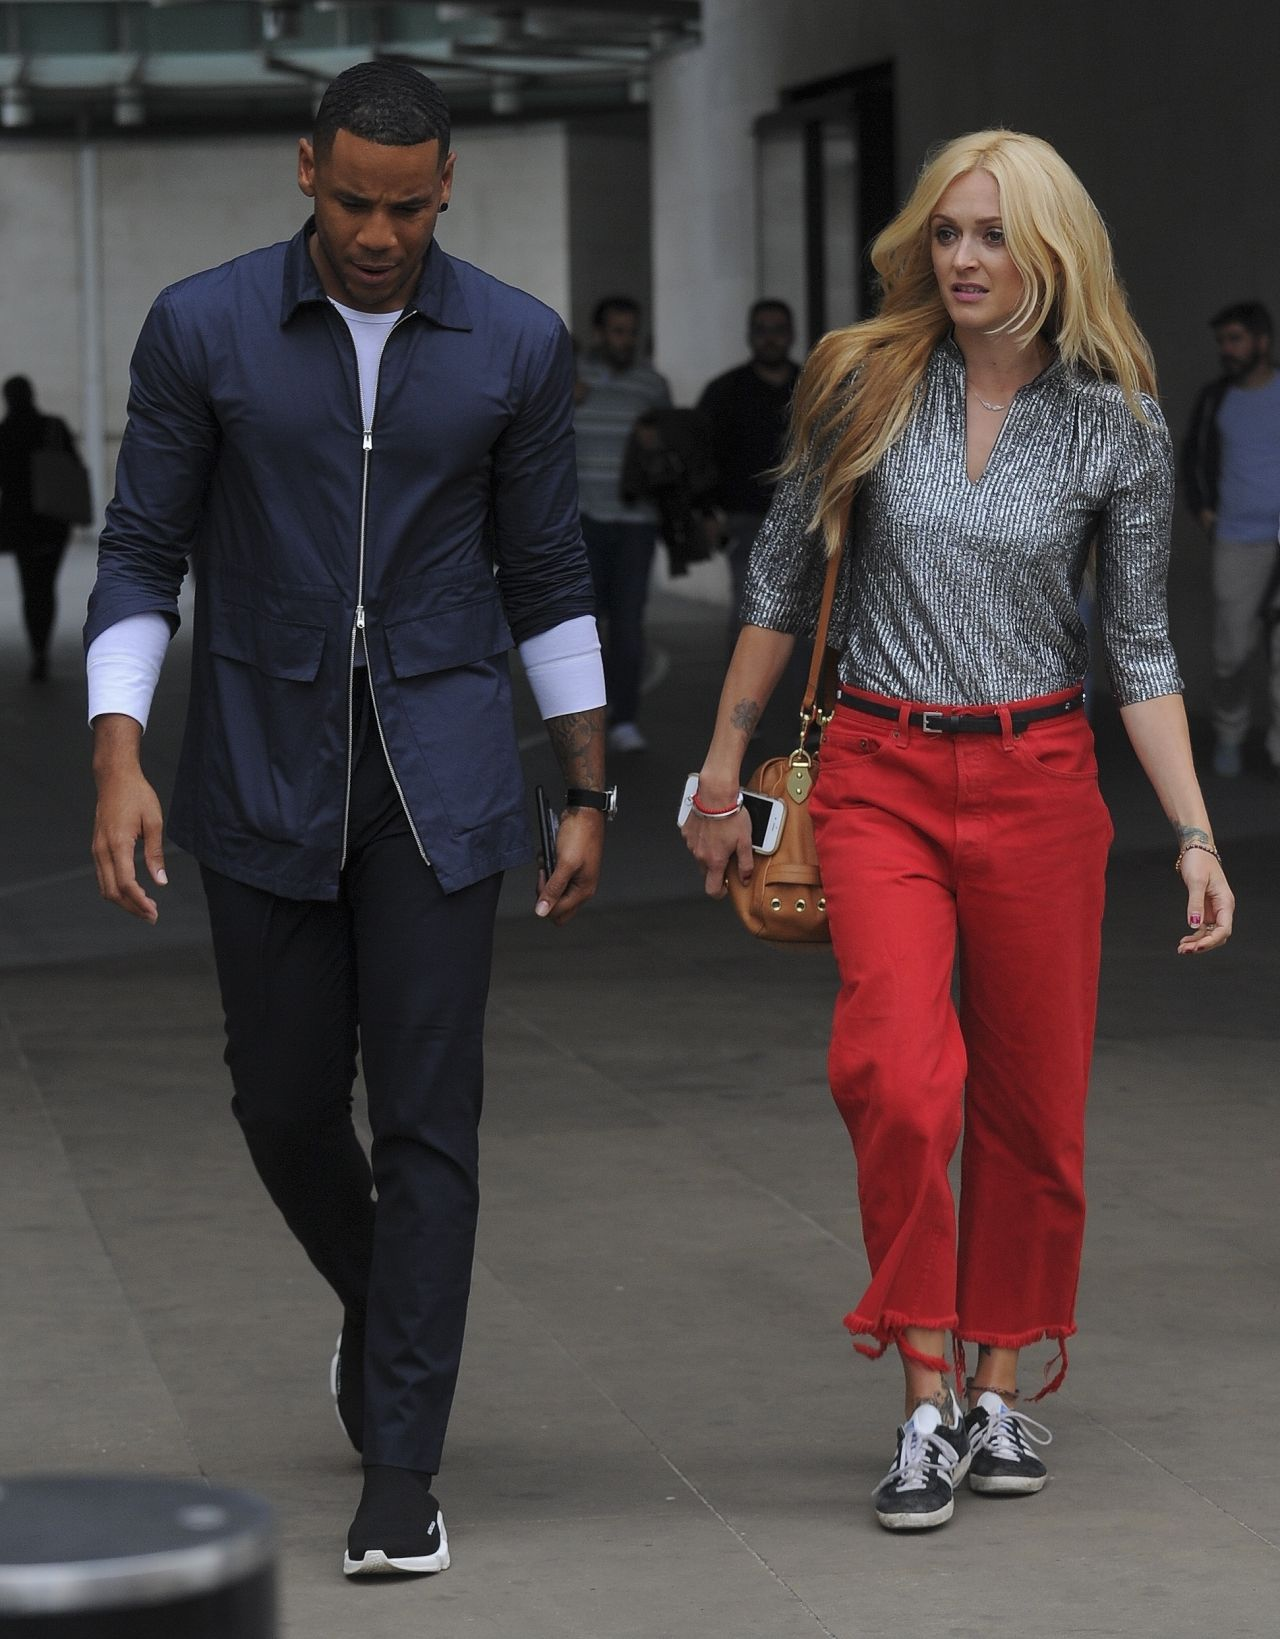 Ferne Cotton and Reggie Yates - Leaving the BBC Broadcasting